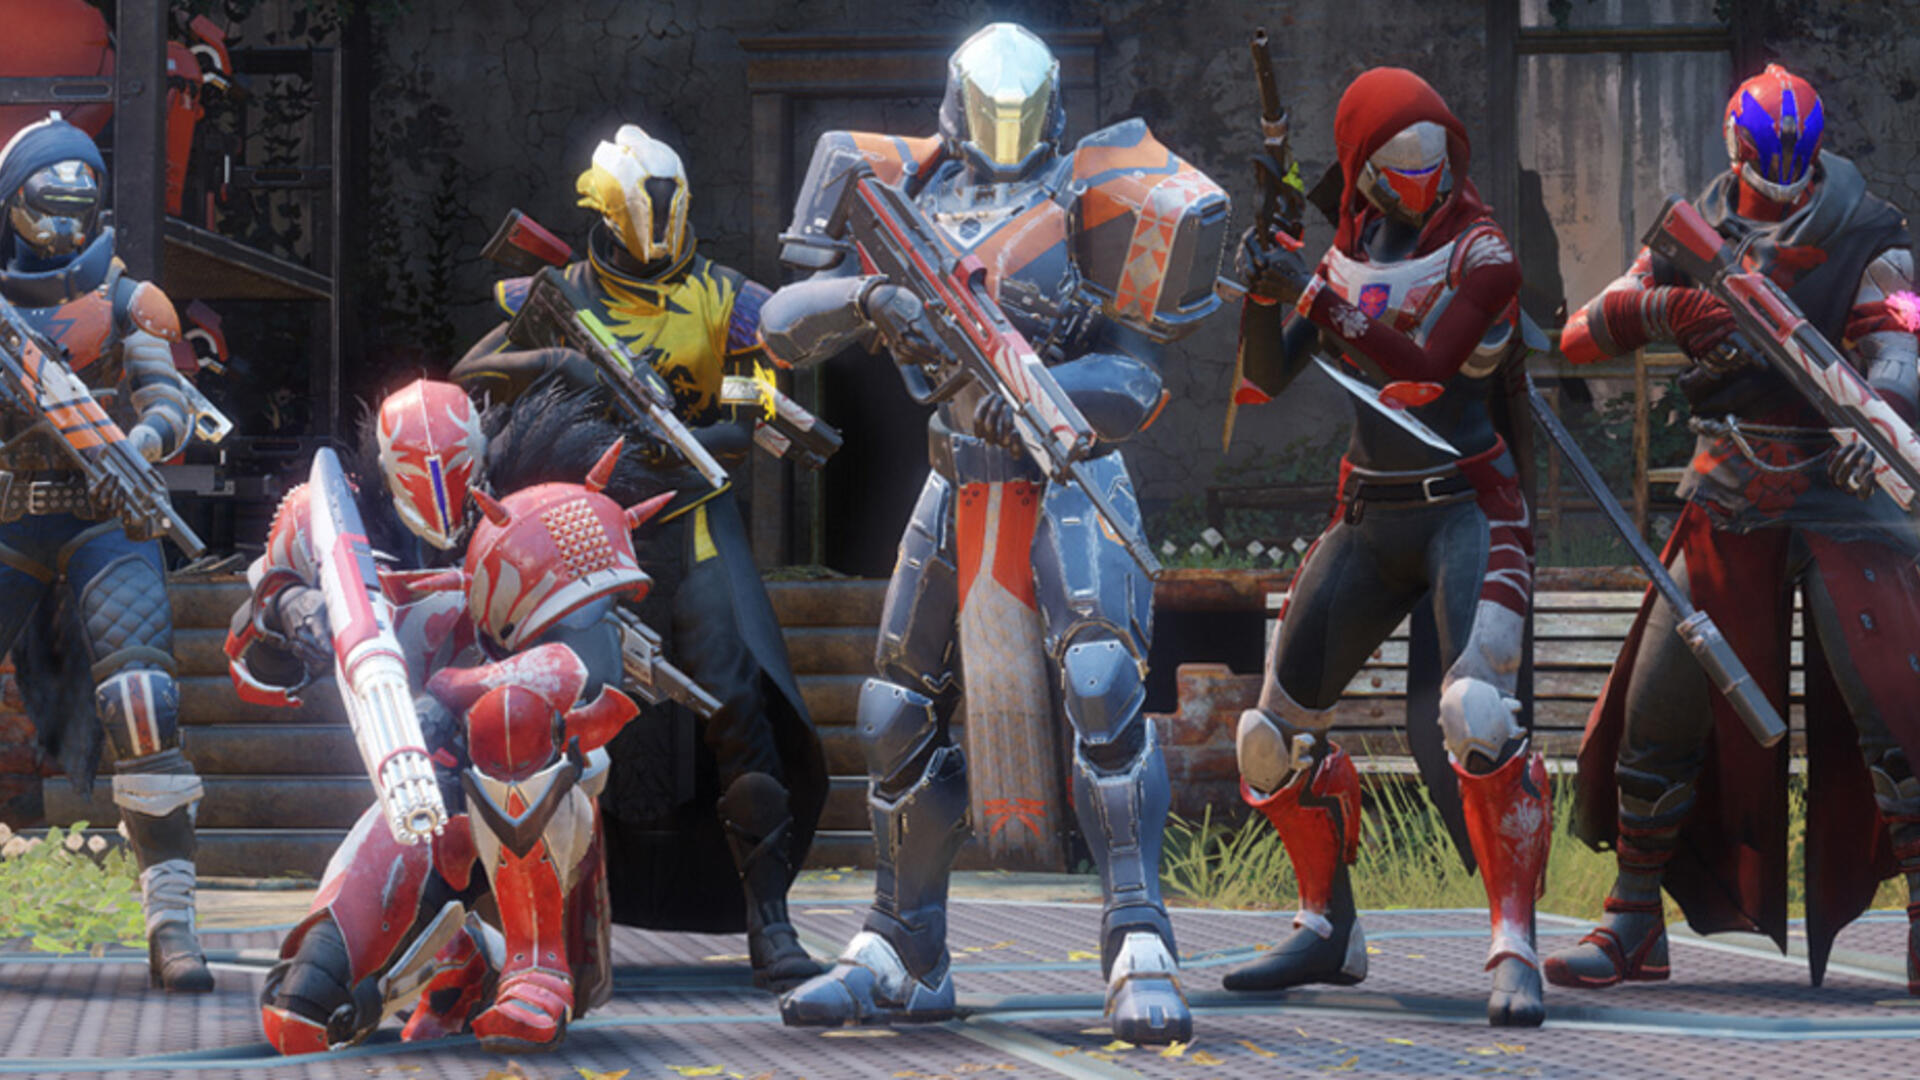 Destiny 2 Players Find Issues With XP Gain Not Entirely Fixed